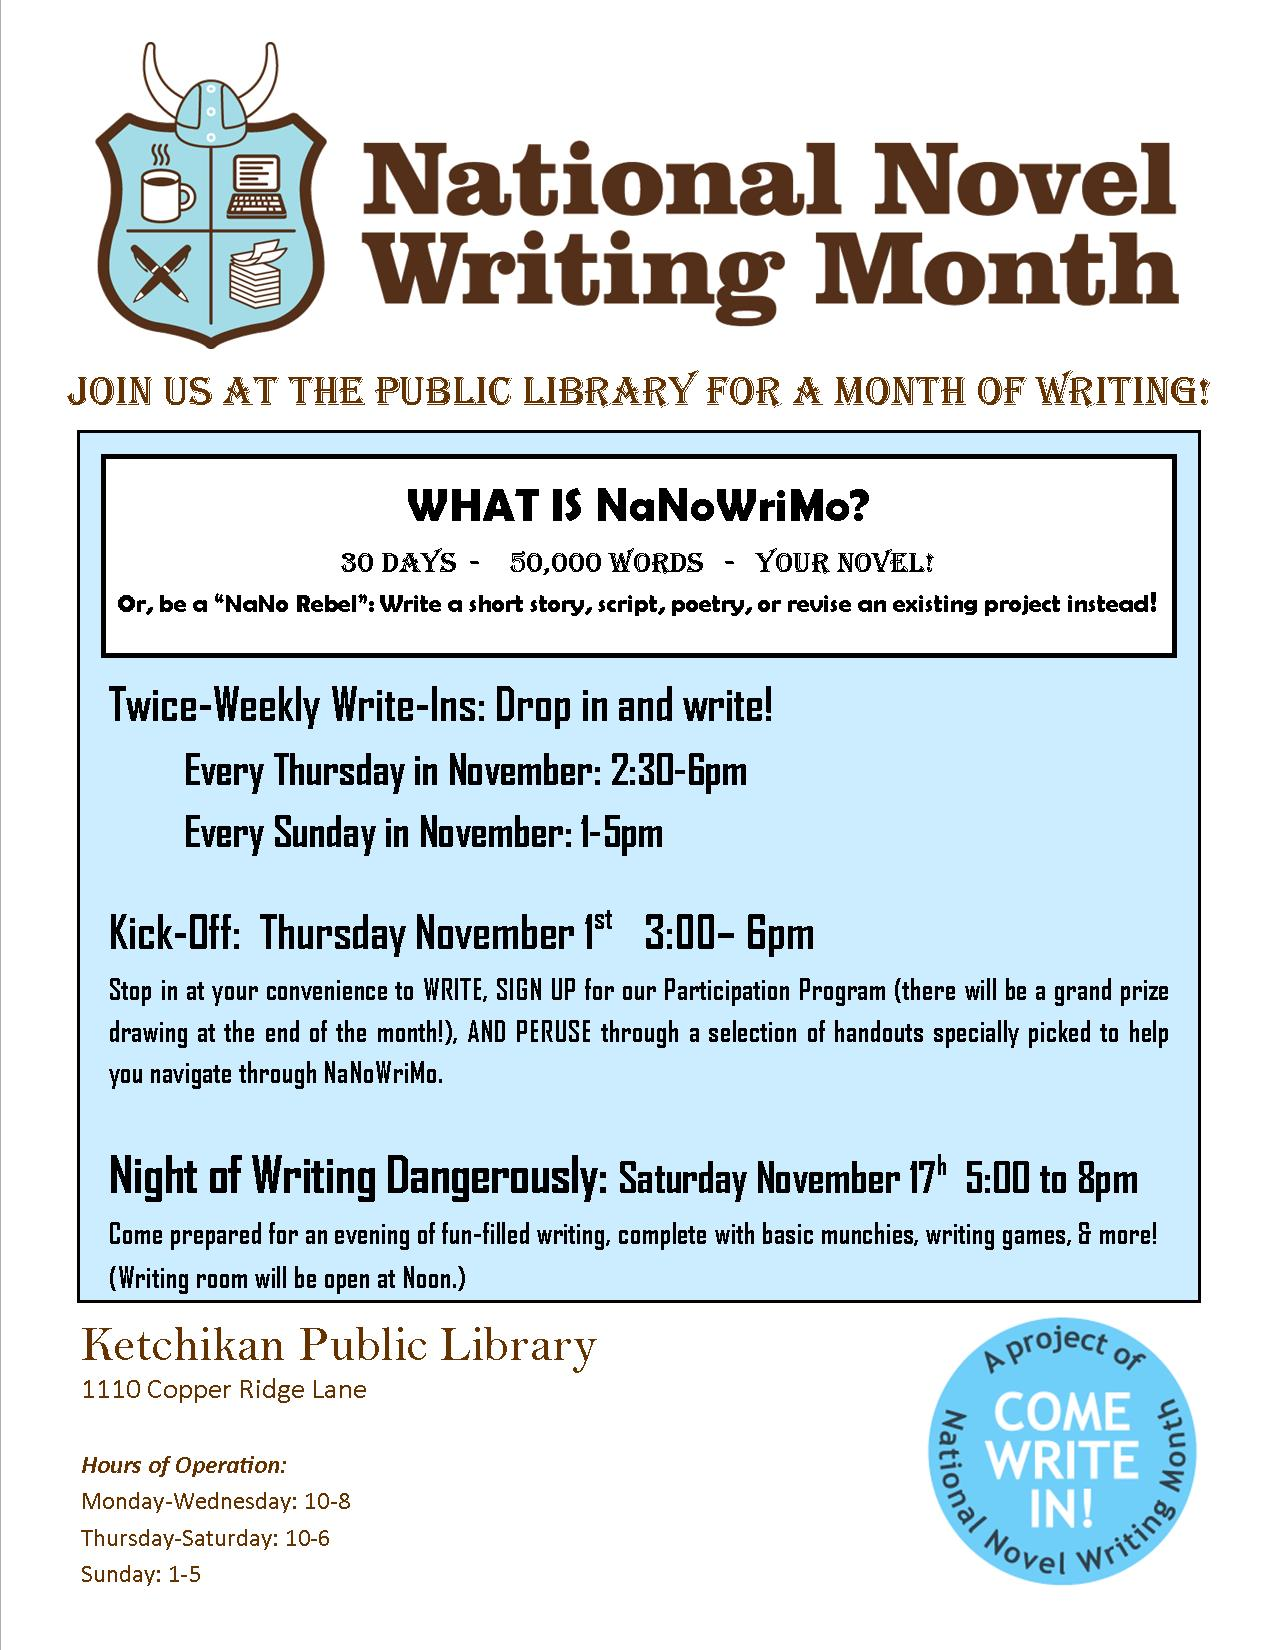 National Novel Writing Month (NaNoWriMo) at the Ketchikan Public Library!